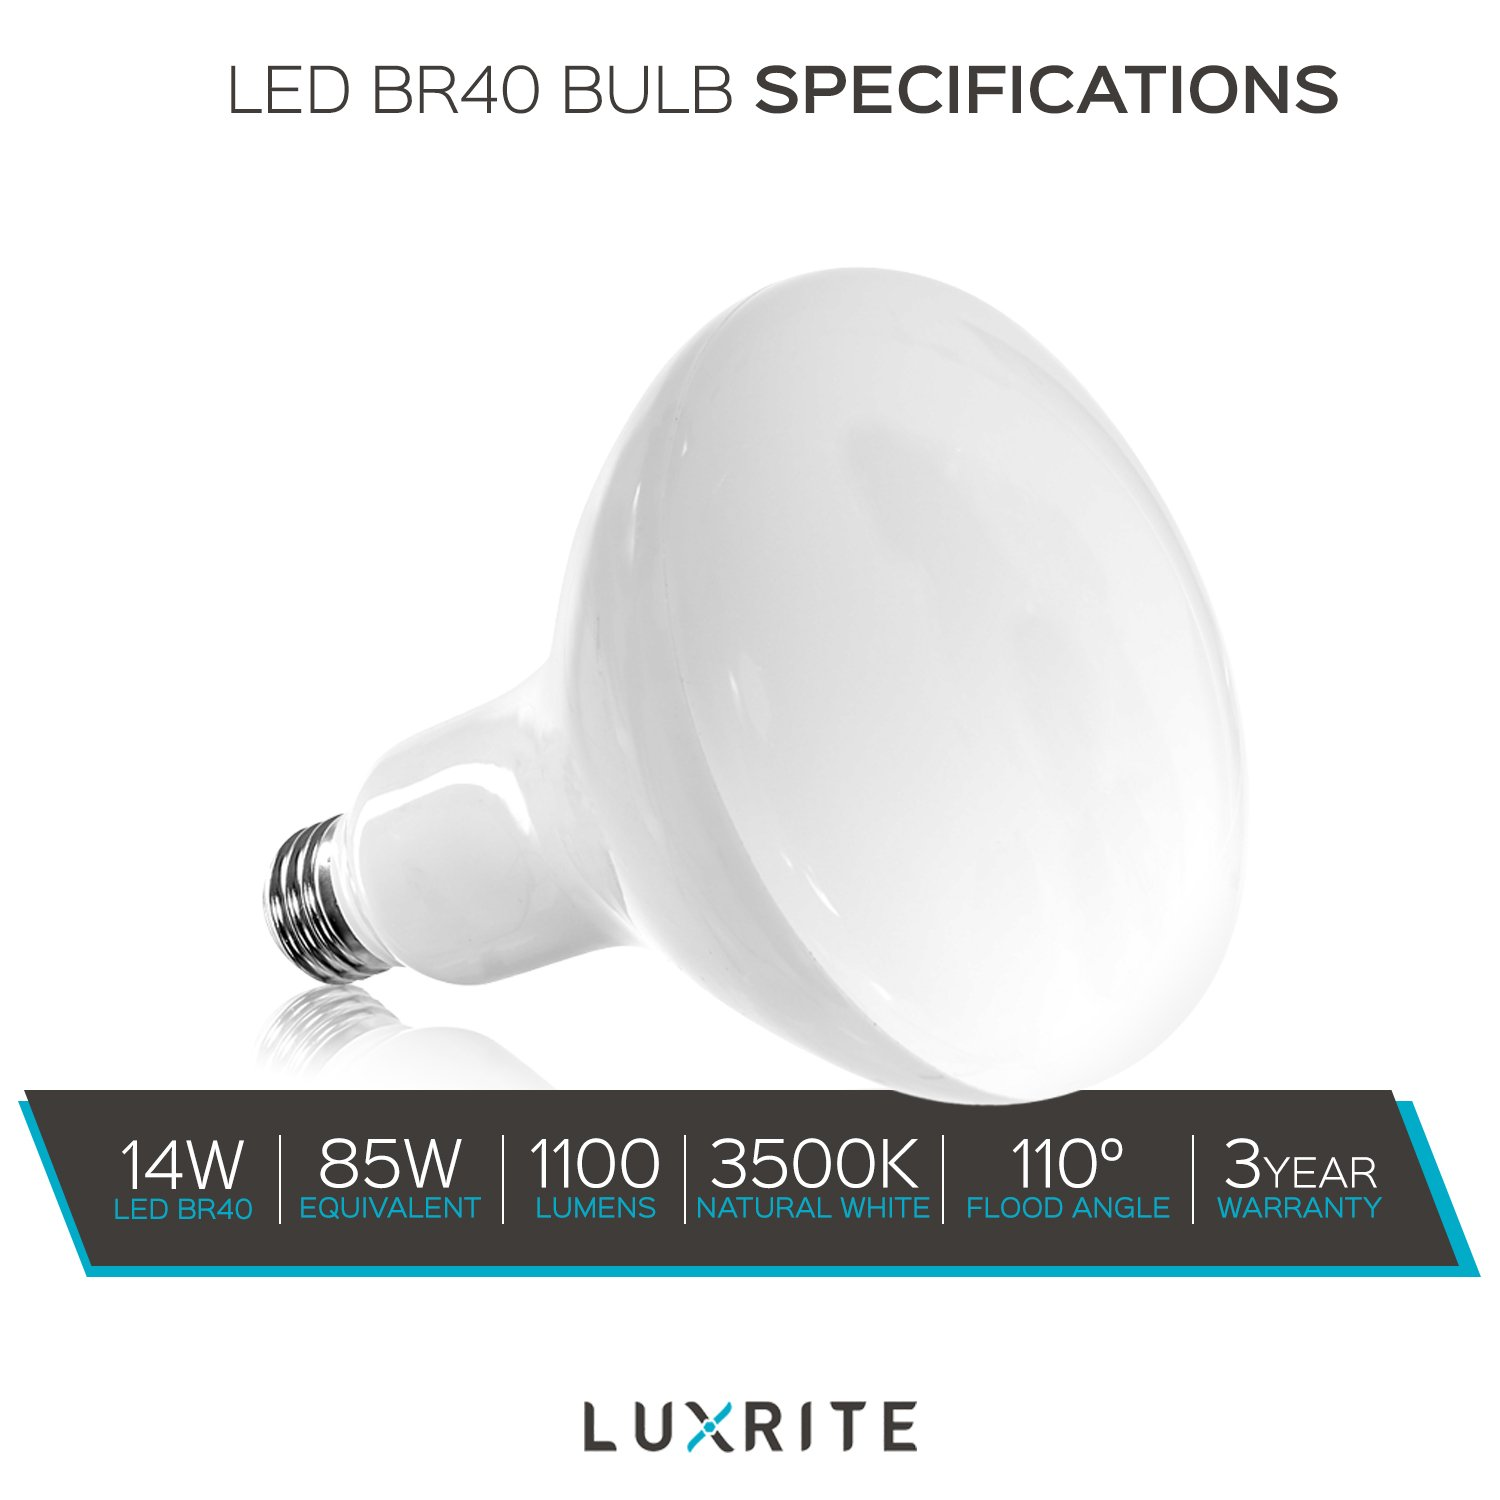 Luxrite BR40 LED Light Bulbs, 85W Equivalent, 3500K Natural White, Dimmable, 1100 Lumen, LED Flood Light Bulb, 14W, E26 Medium Base, Indoor/Outdoor - Perfect for Office and Recessed Lighting (12 Pack) by Luxrite (Image #8)